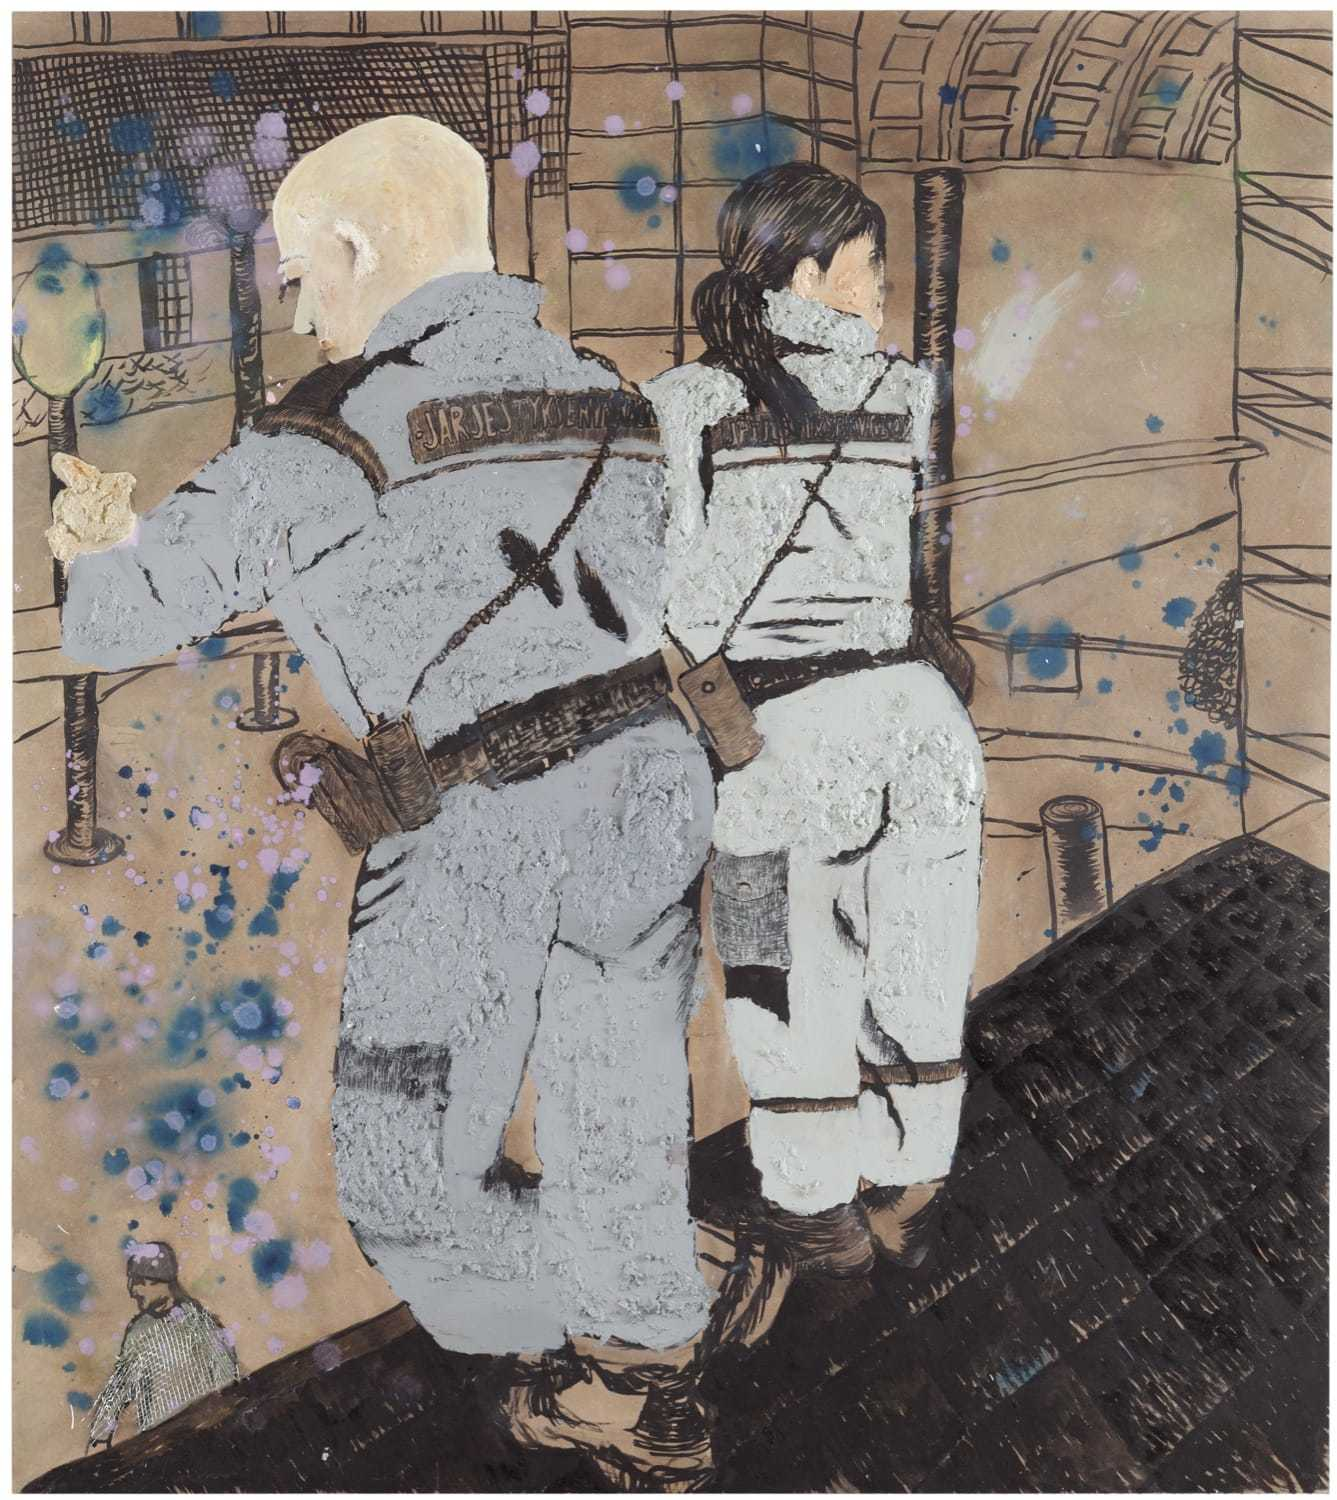 Guards (2011)